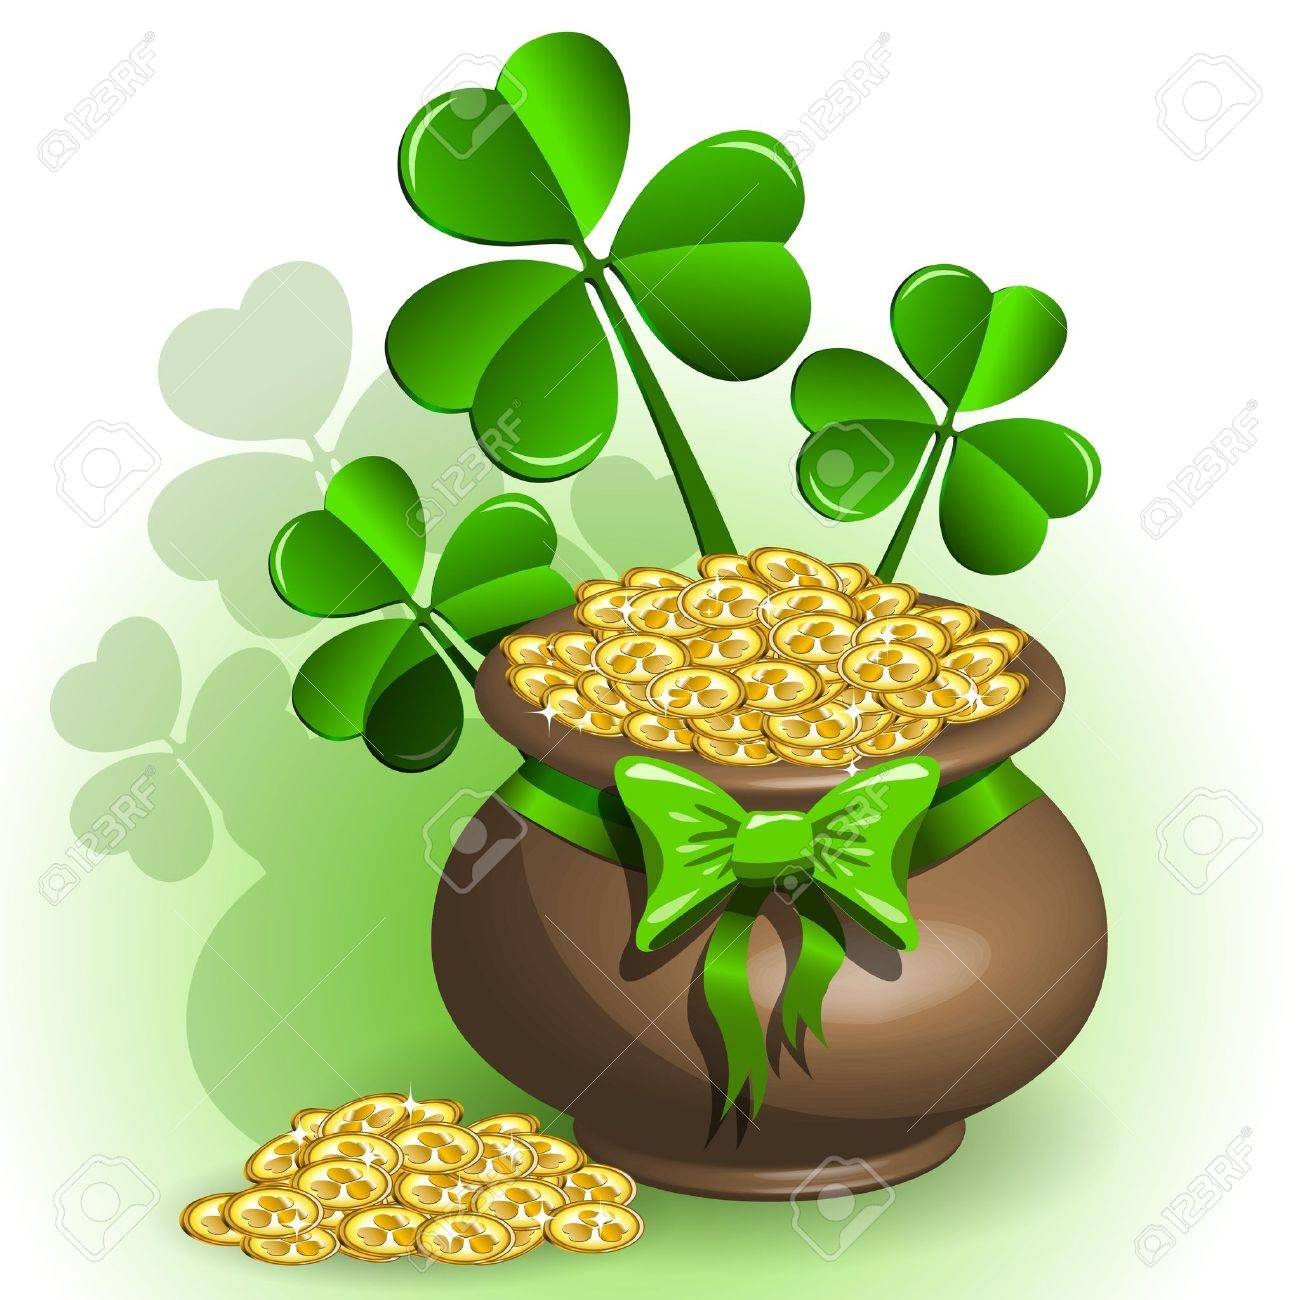 abstract illustration to the day of saint Patrick Stock Vector - 12164191